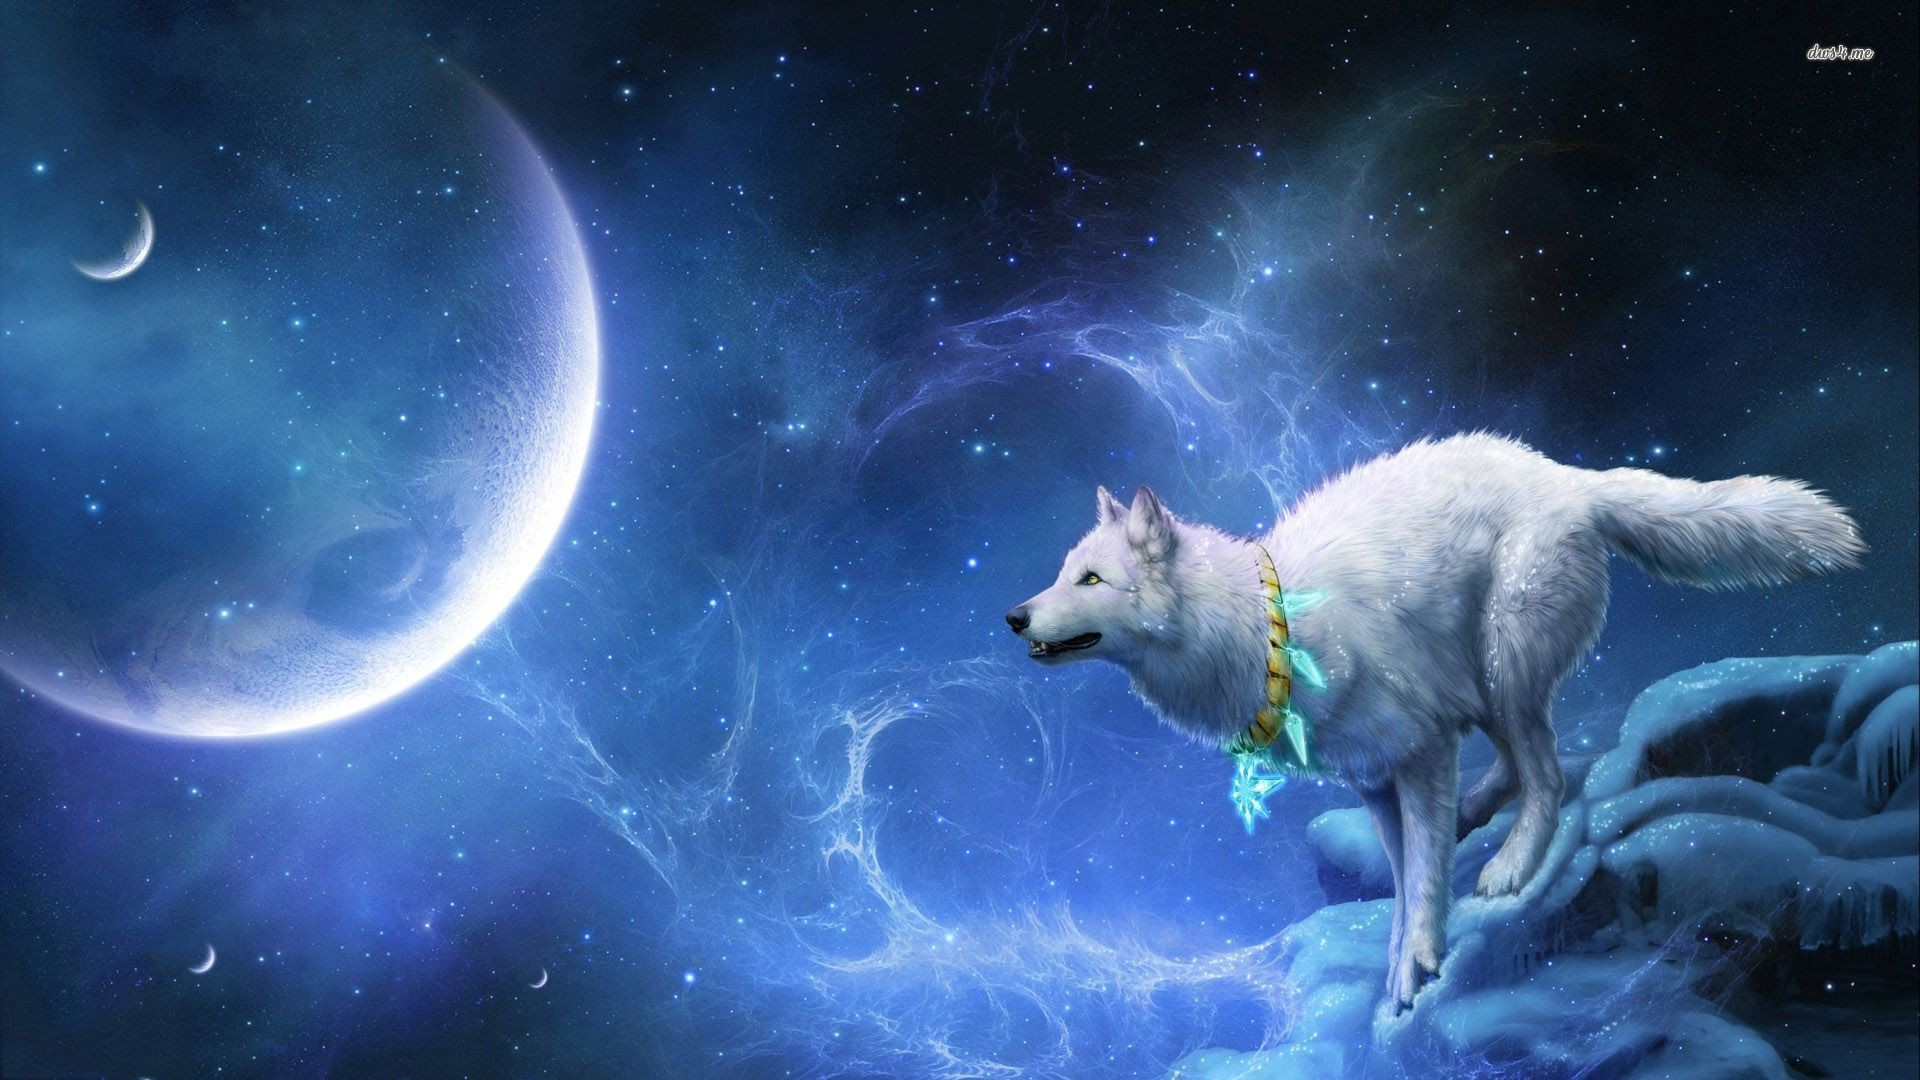 1920x1080 Moon Painting Stag Dark Blue Wallpaper At Fantasy Wallpapers